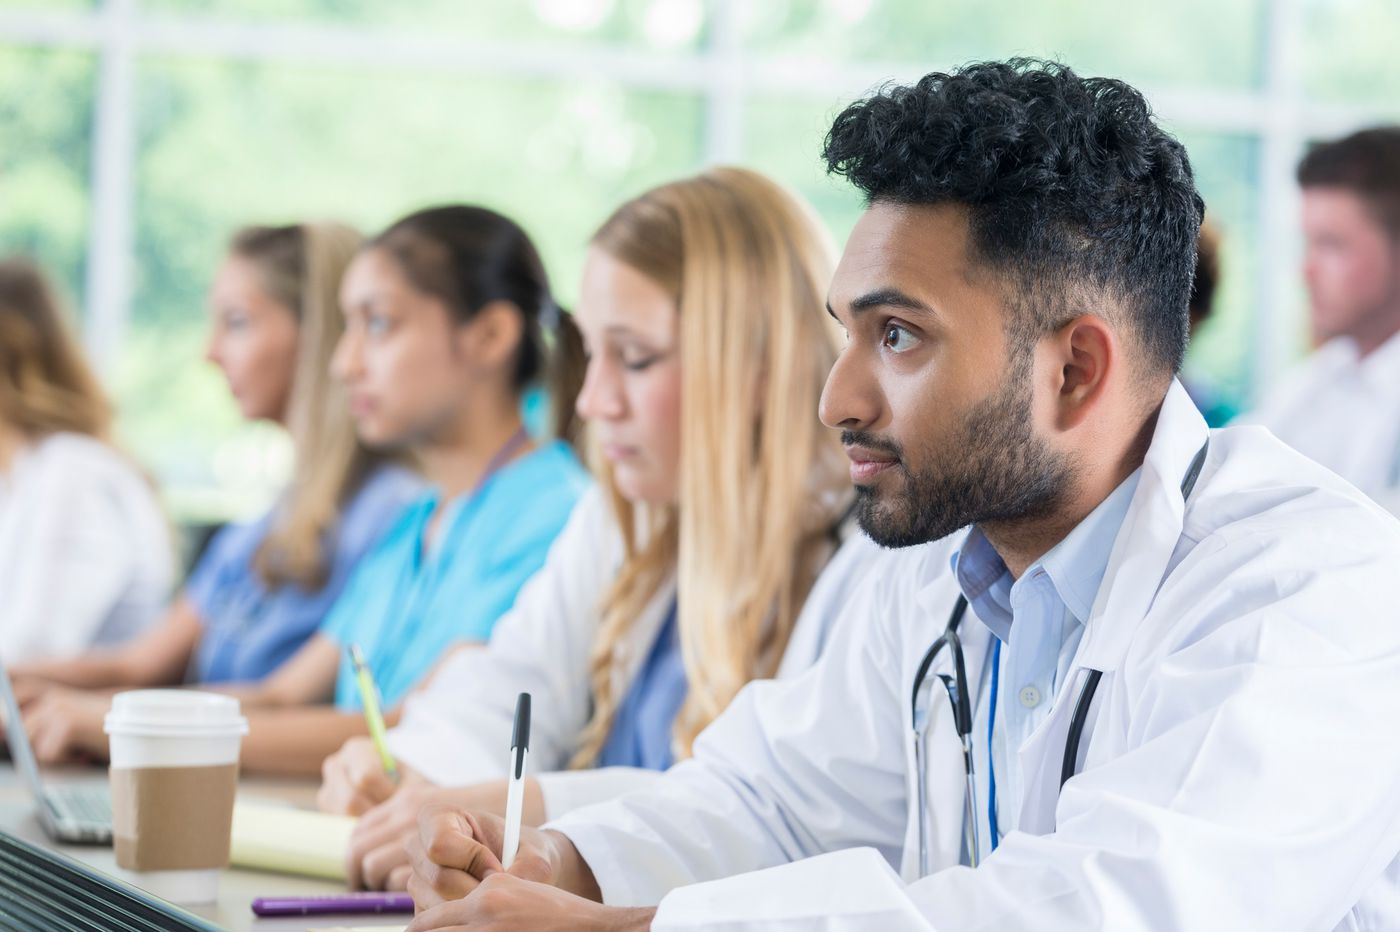 How Medical Schools Can Transform Curriculums to Undo Racial Biases